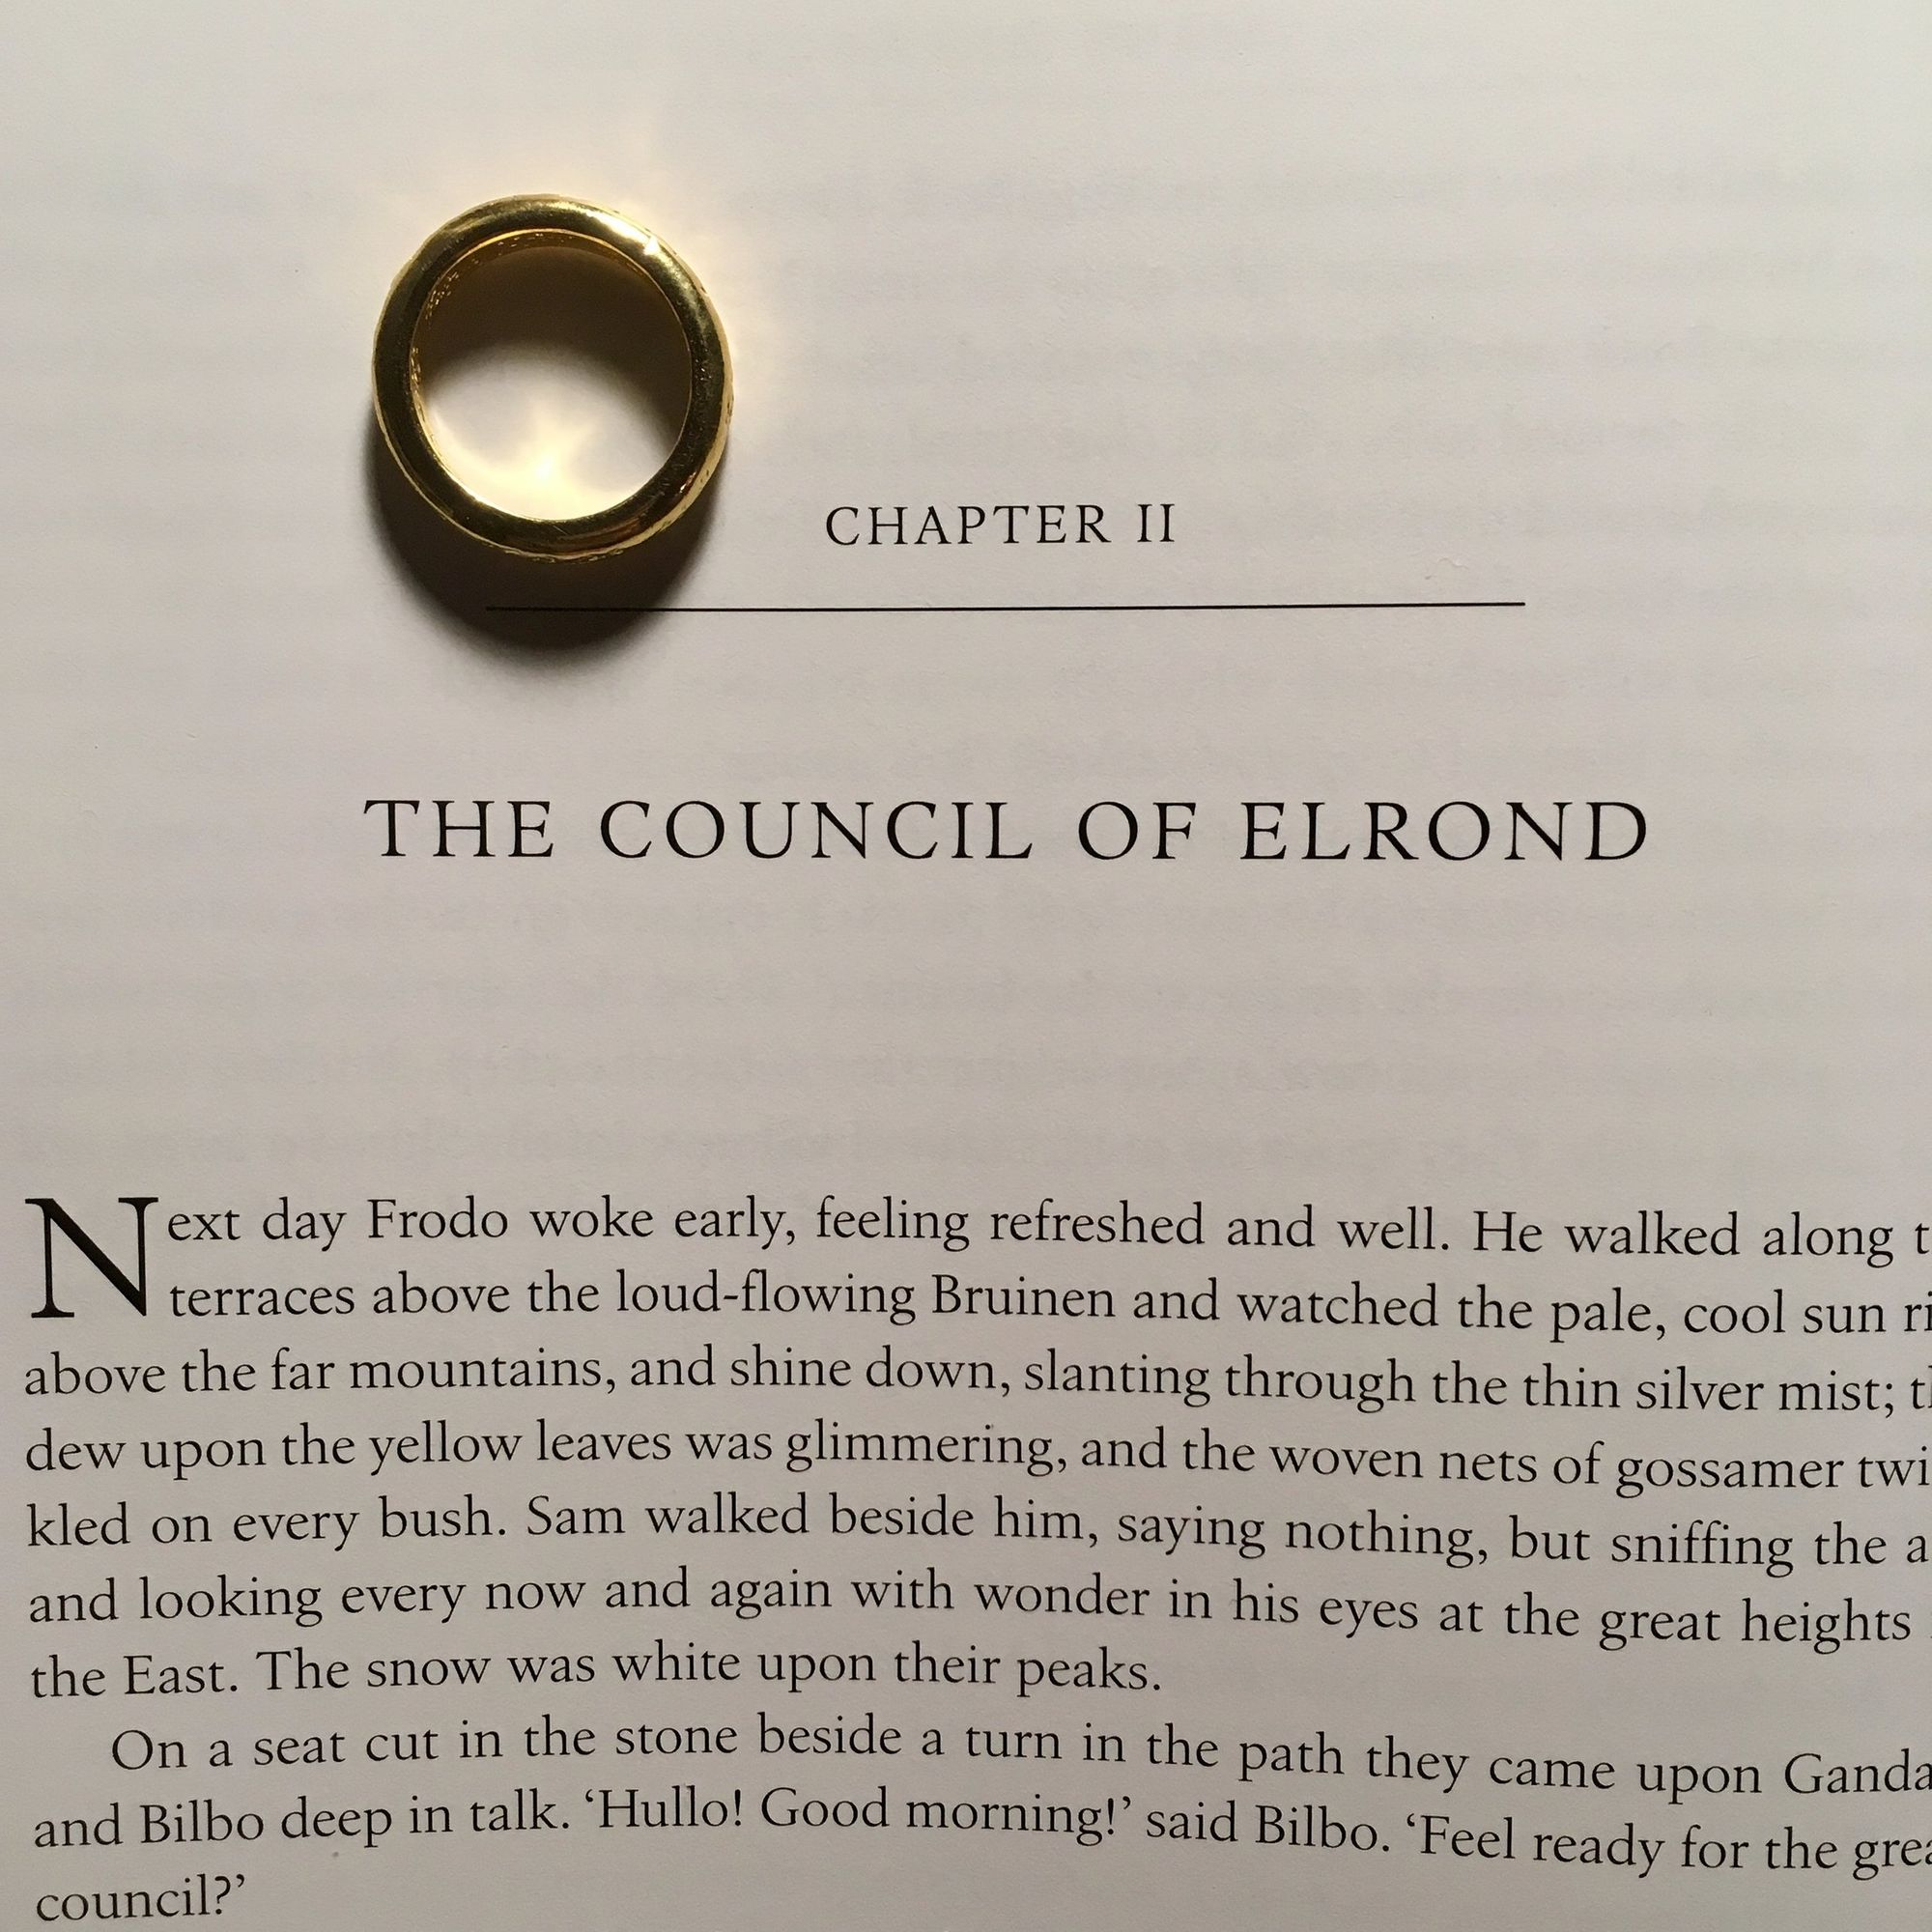 The Fellowship of the Ring: The Council of Elrond